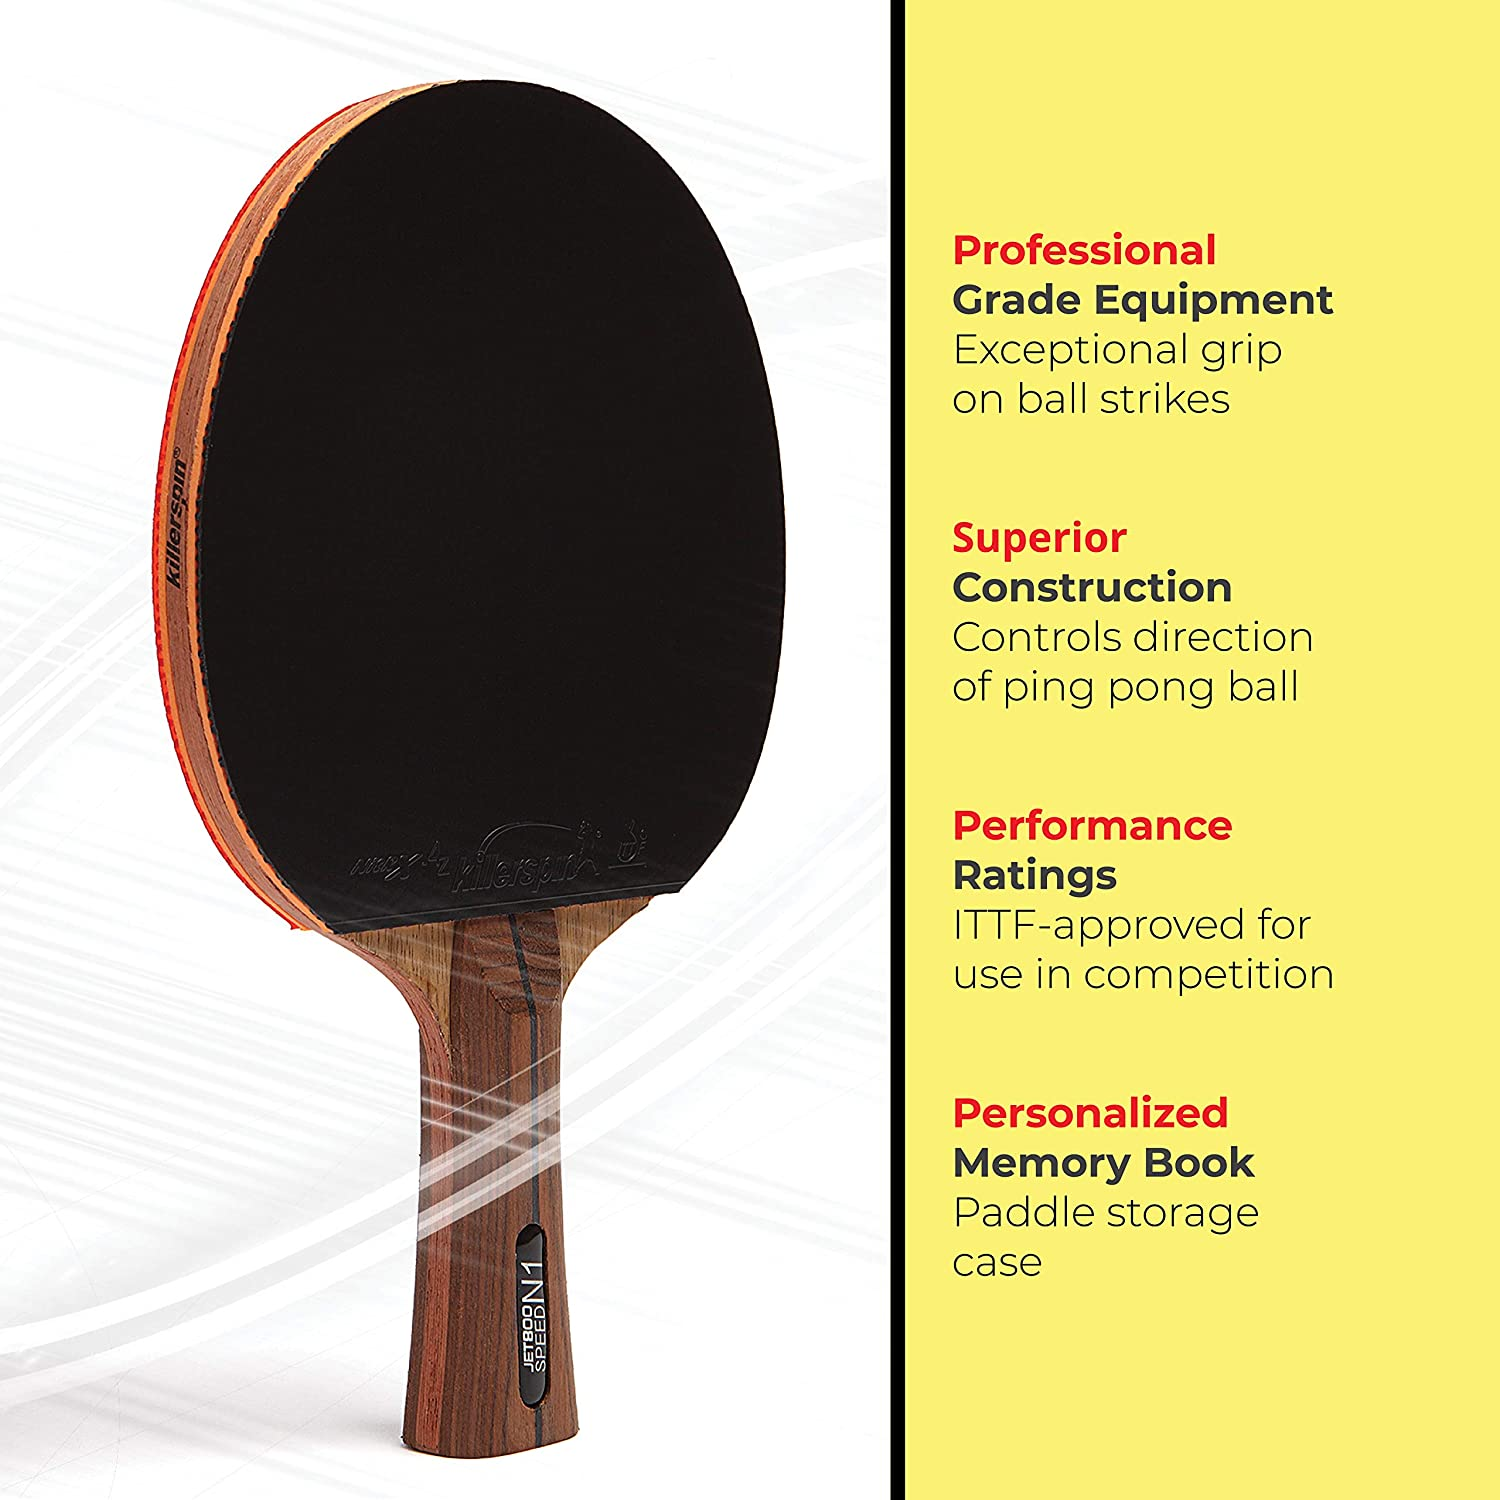 Killerspin Jet 800 Table Tennis Paddle, Professional Ping Pong Paddle, Table Tennis Racket with Carbon Fiber Blade, Nitrx Rubber Grips Ping Pong ...